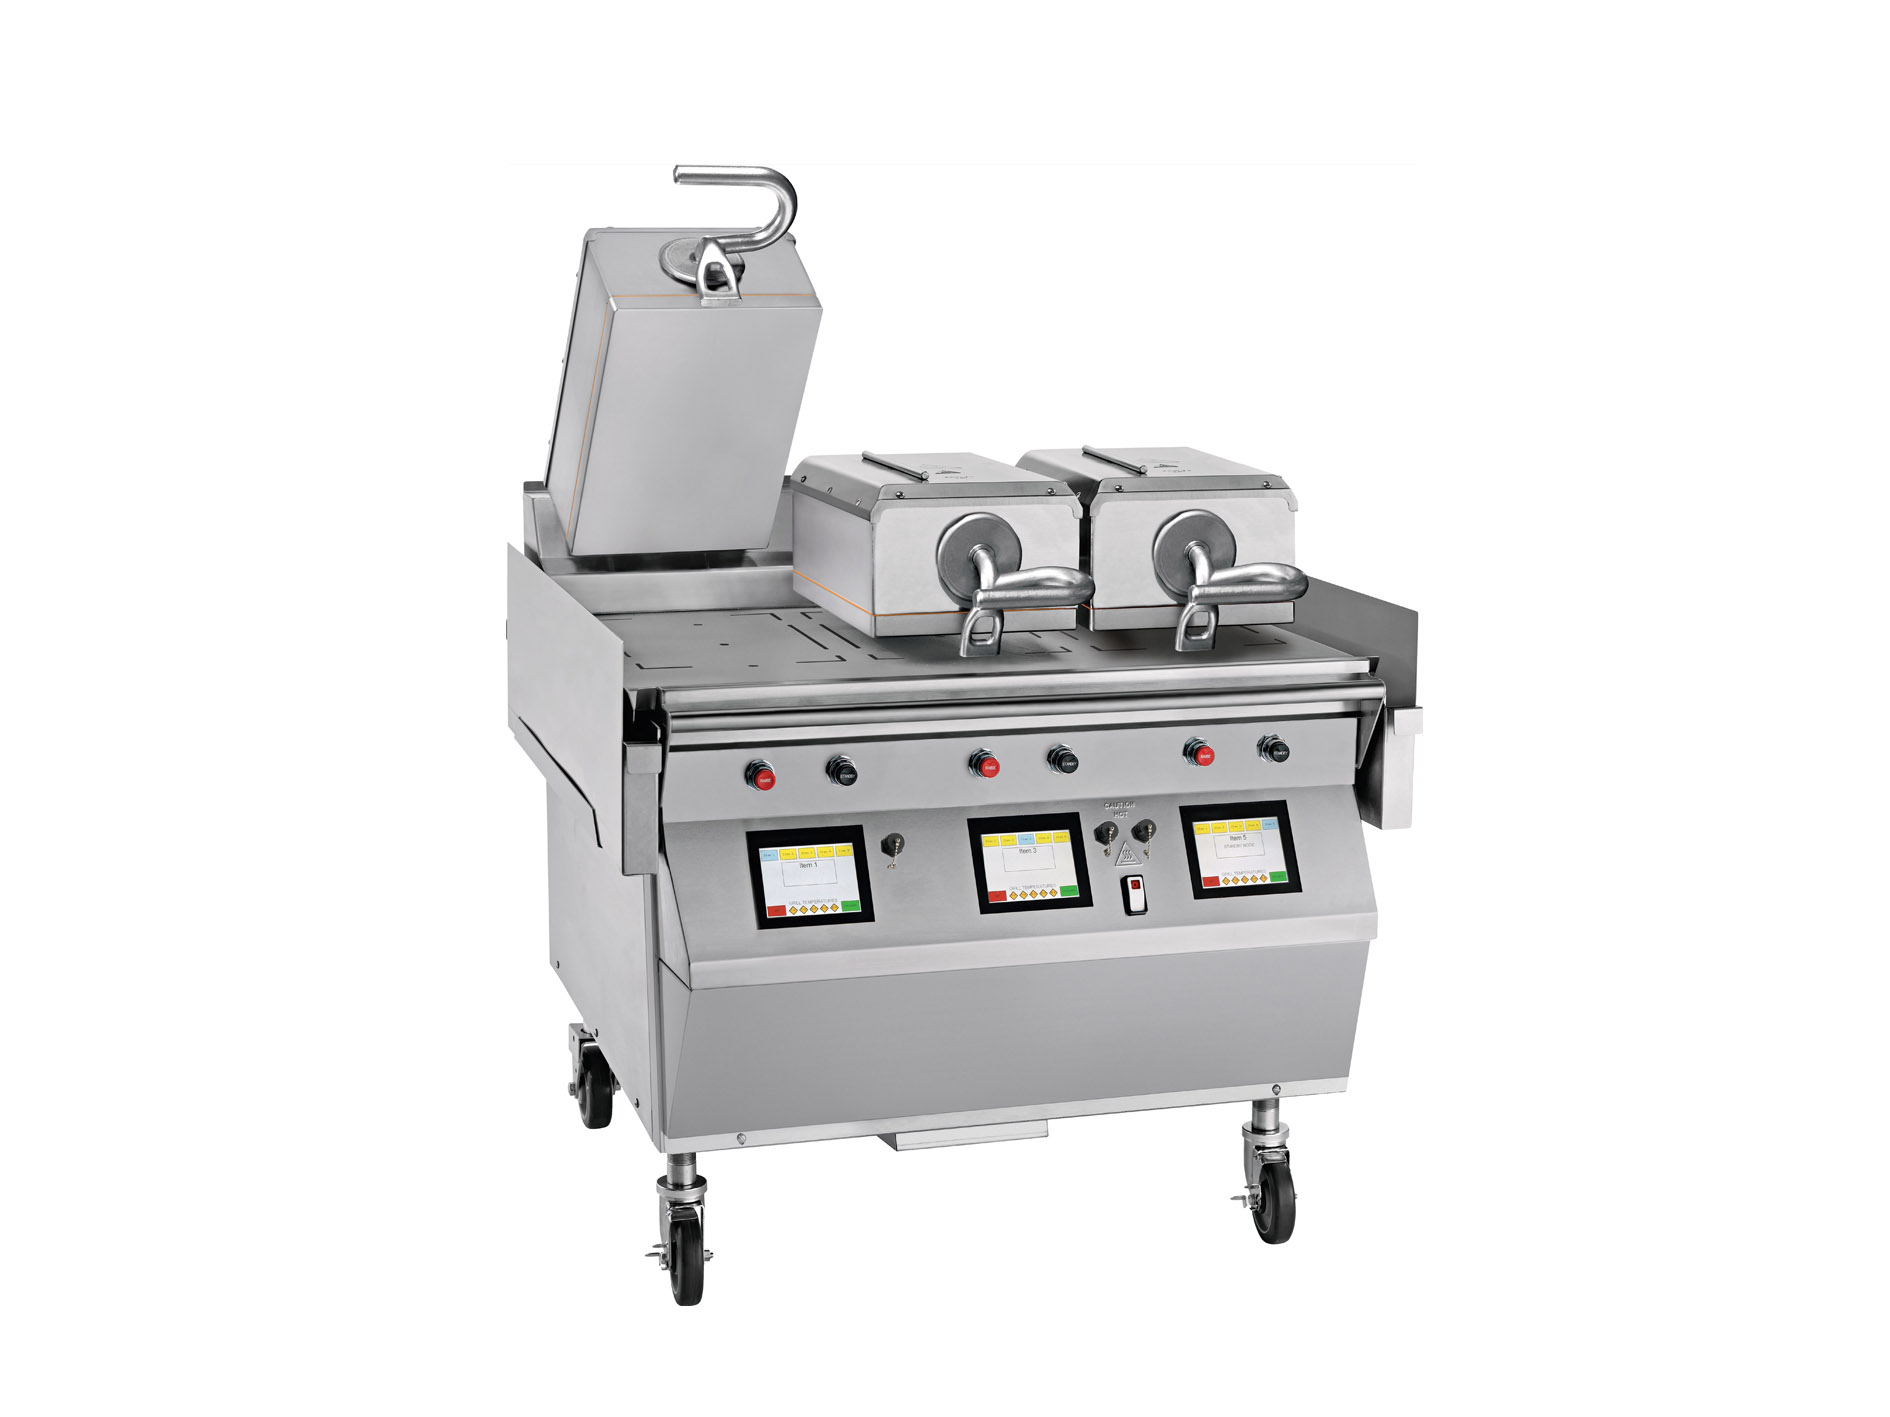 The Taylor L810 grill